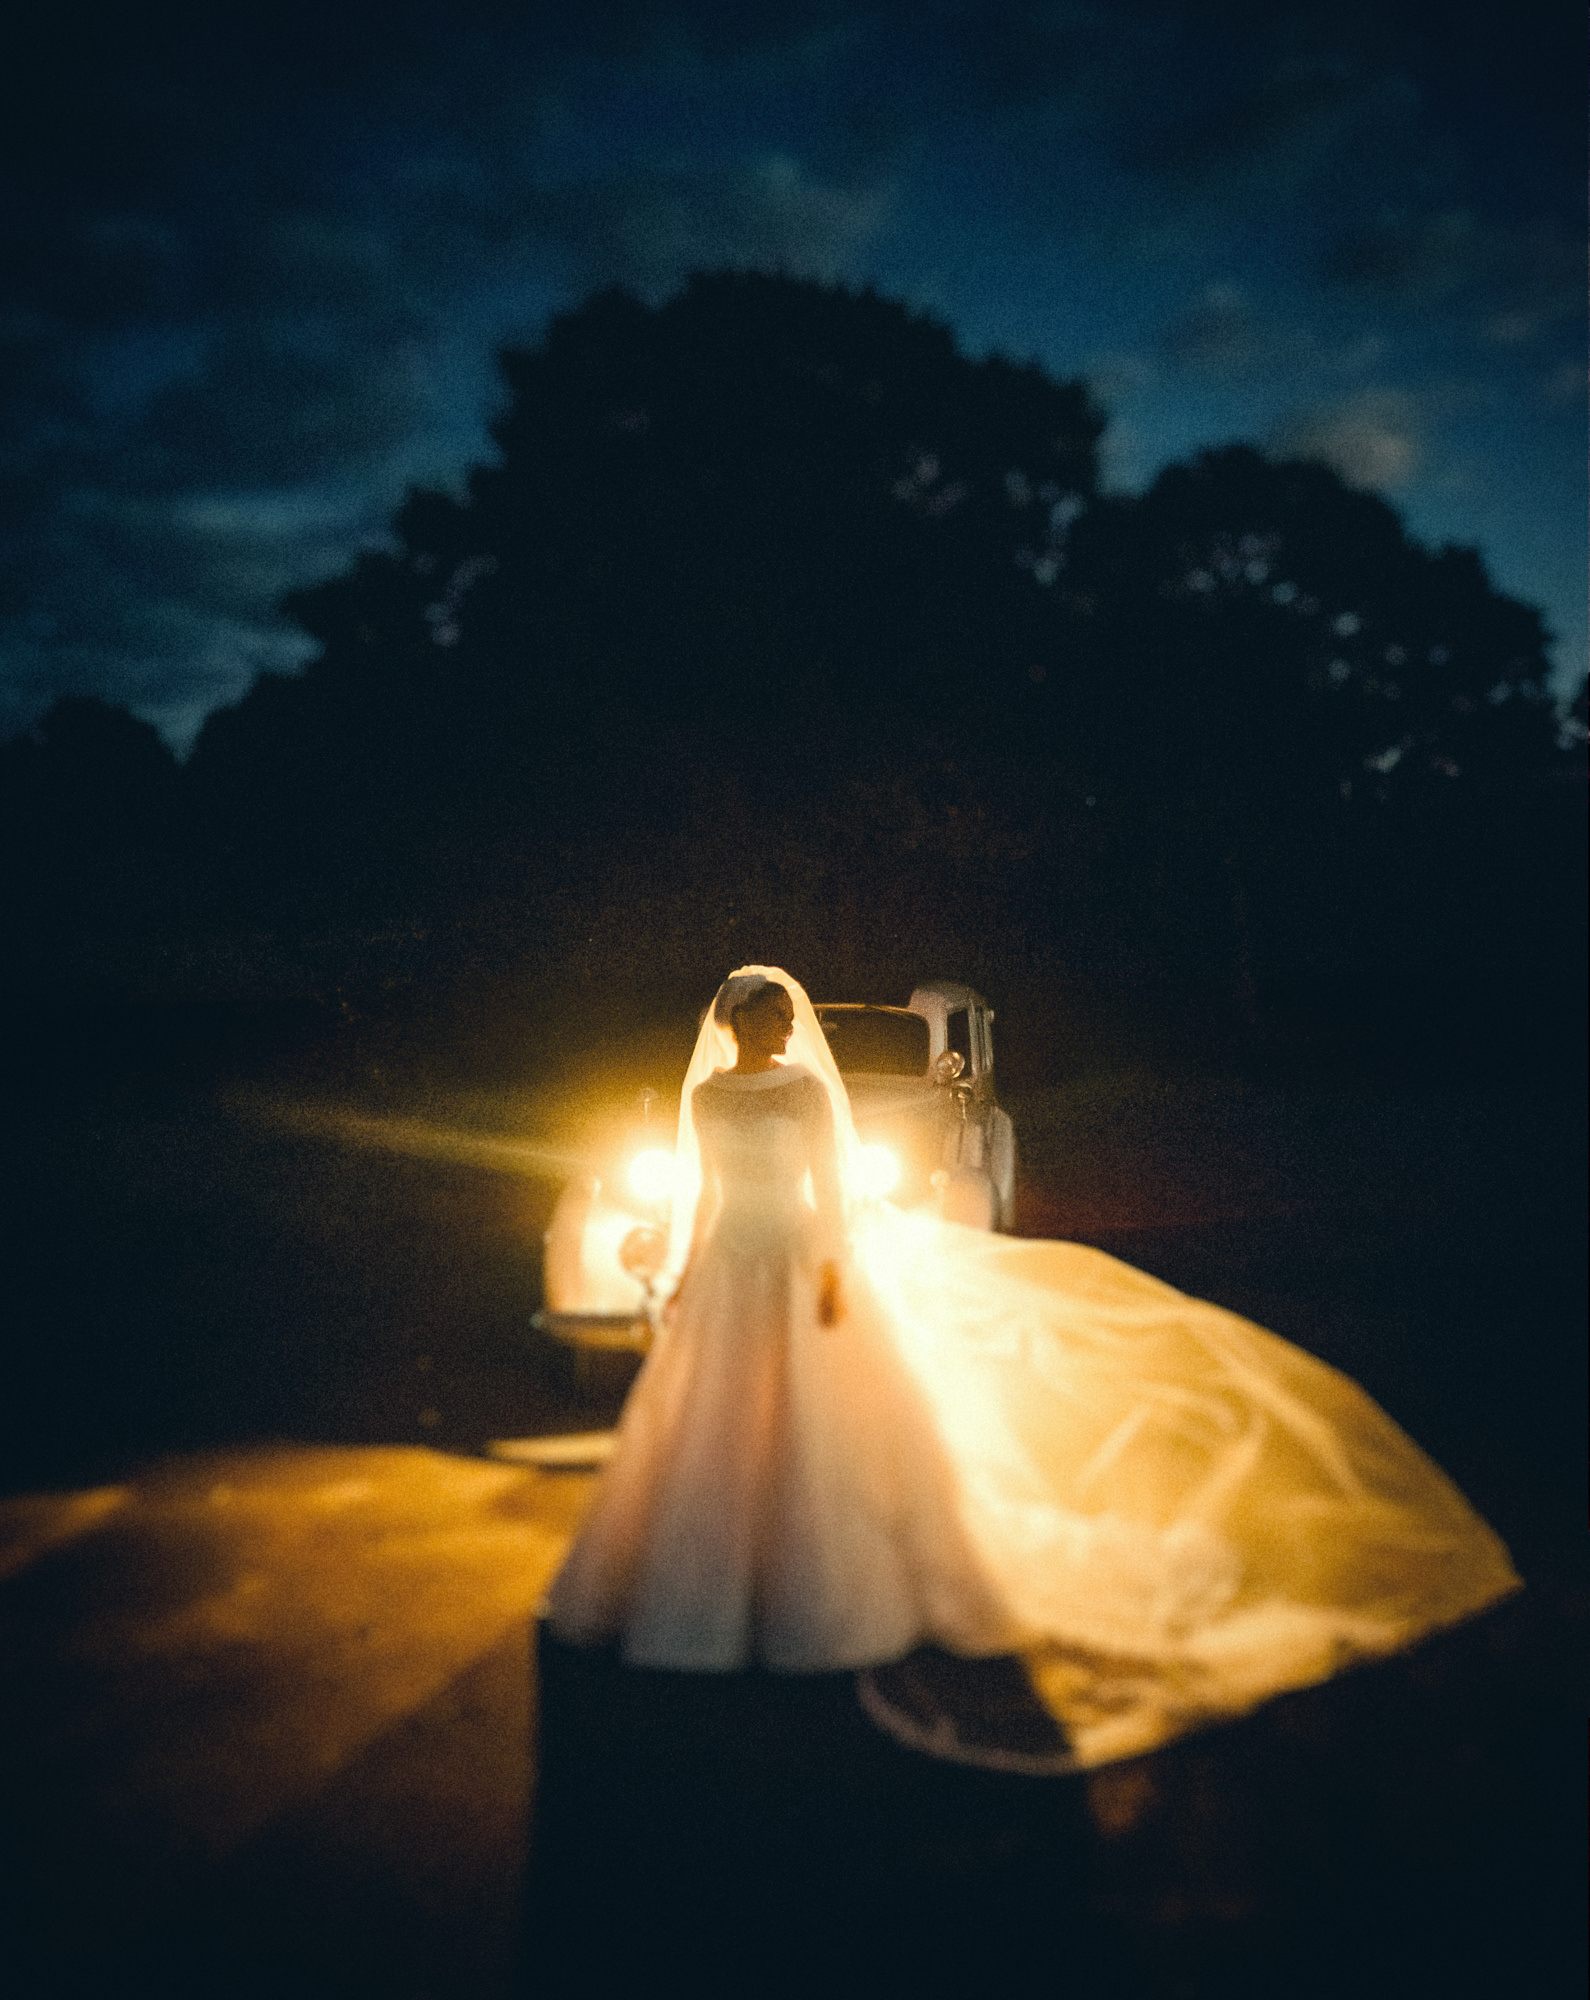 Bride with classic A-line gown lit by headlights photo by Nordica Photography